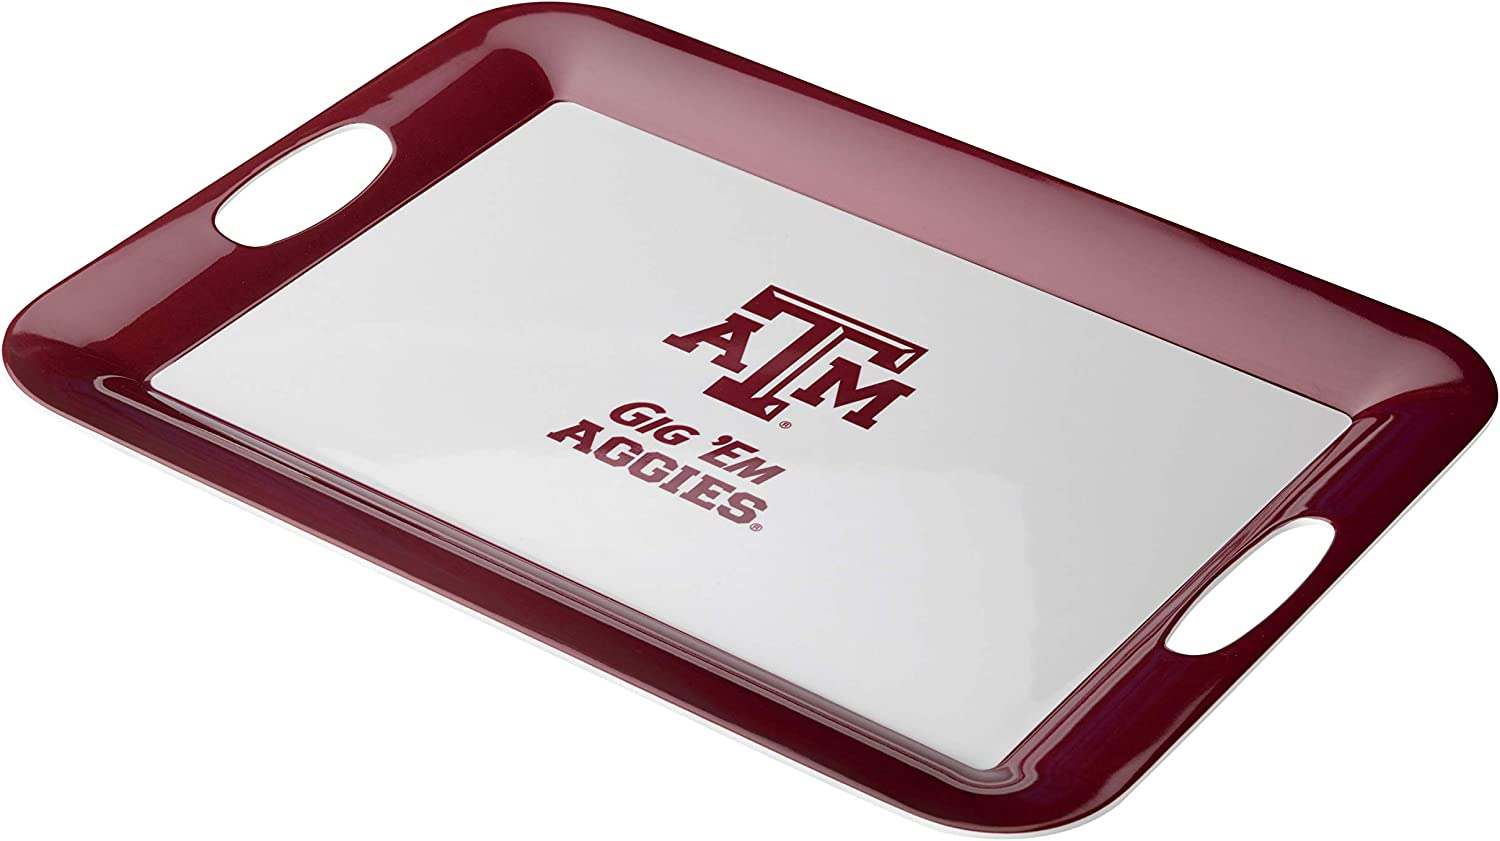 College Kitchen Collection Texas A&M University Serving Tray / Party Platter / Food Appetizer Serveware - 12.5 Inch, White